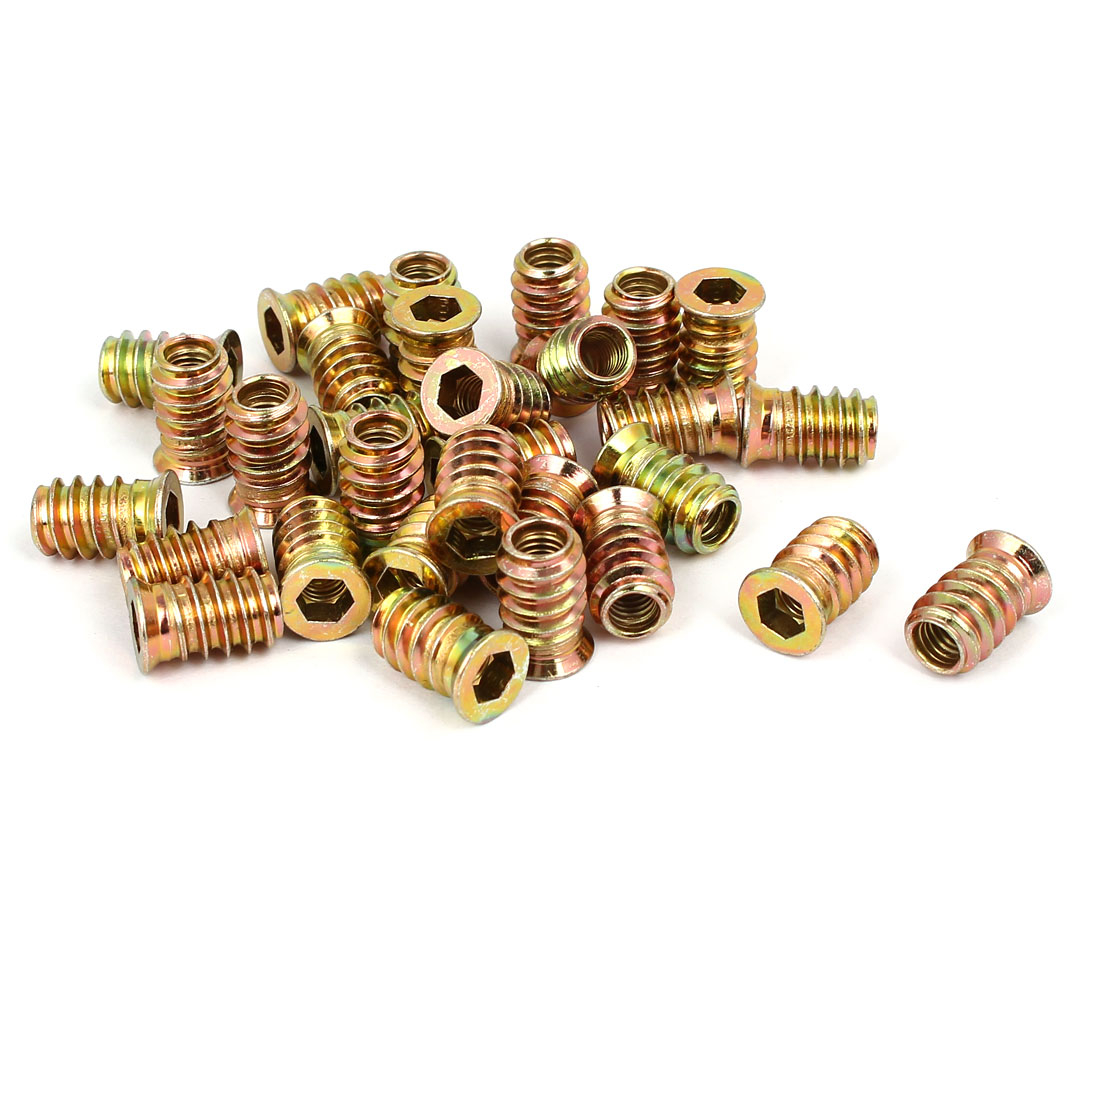 6mm x 17mm Wood Furniture Insert Interface E-Nut Hex Socket Threaded Nut 30PCS